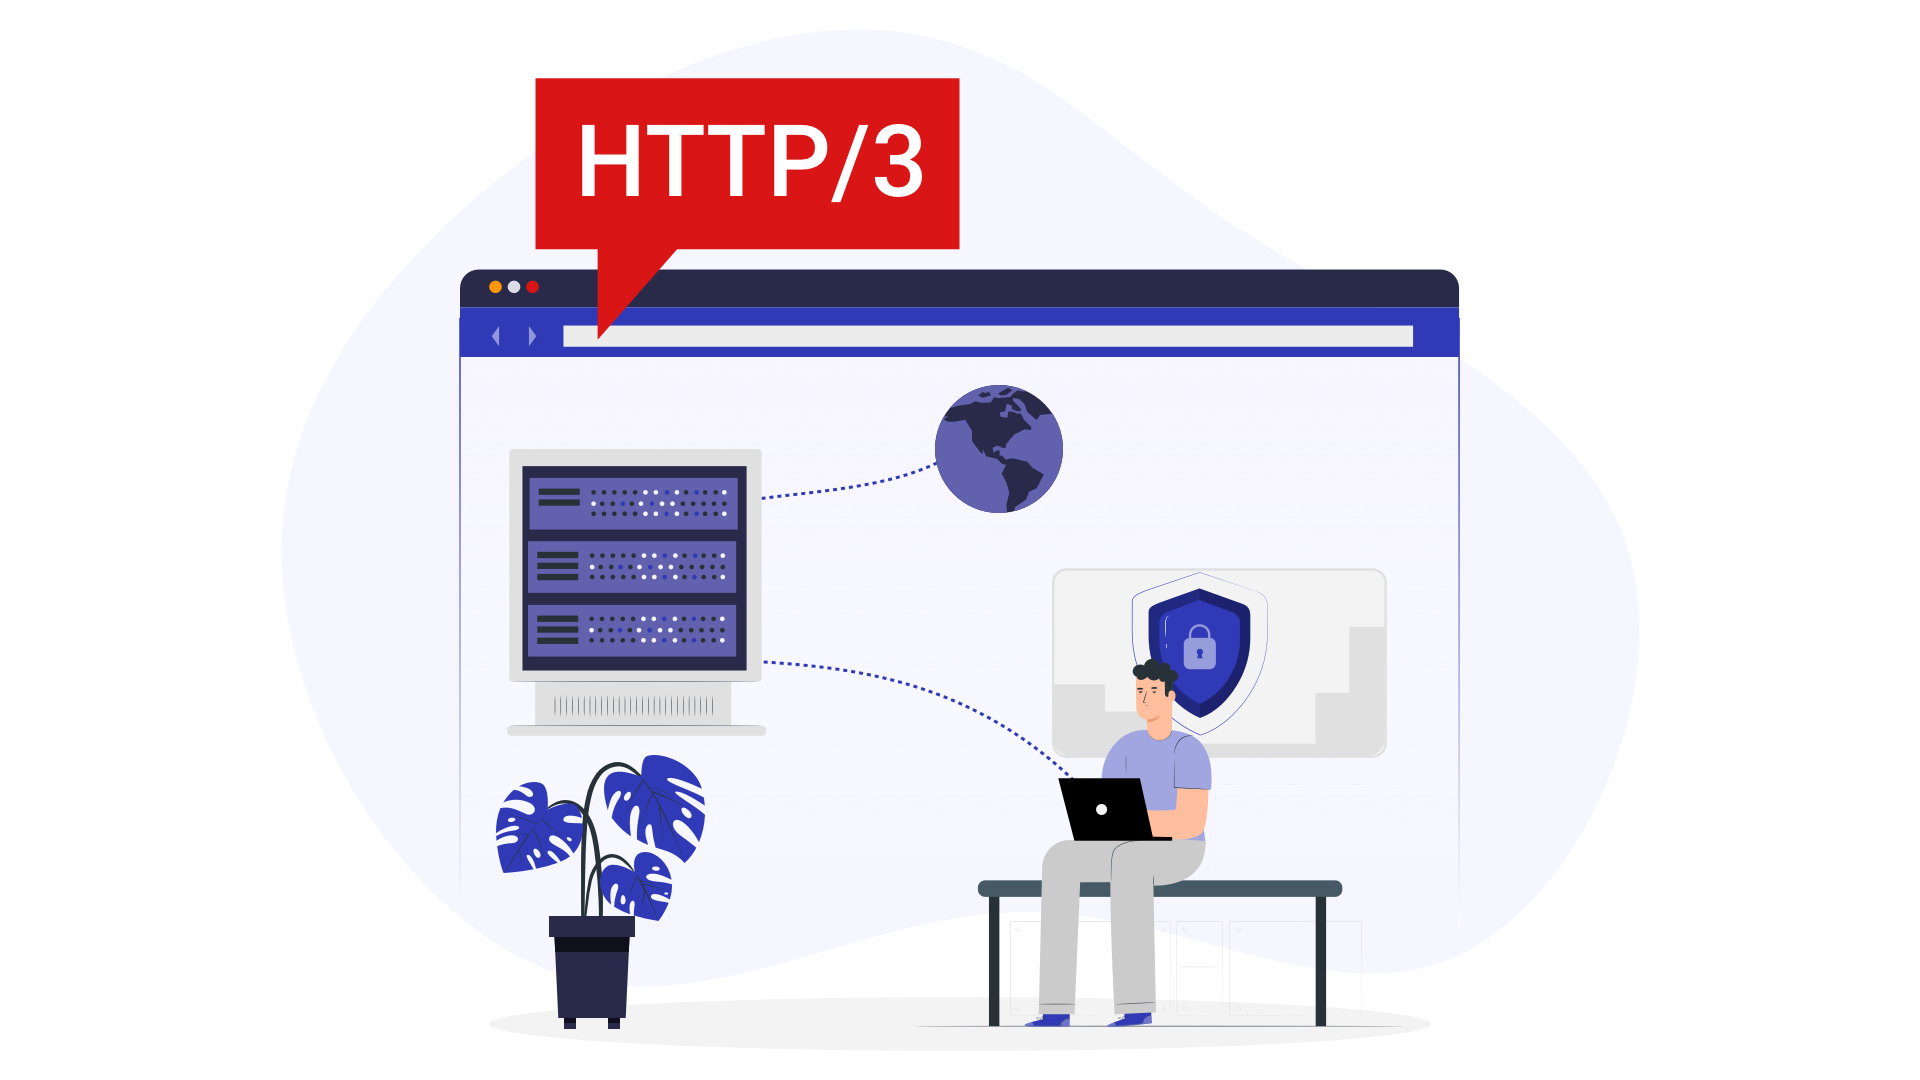 HTTP/3 – a UDP based protocol, Evolution of HTTP